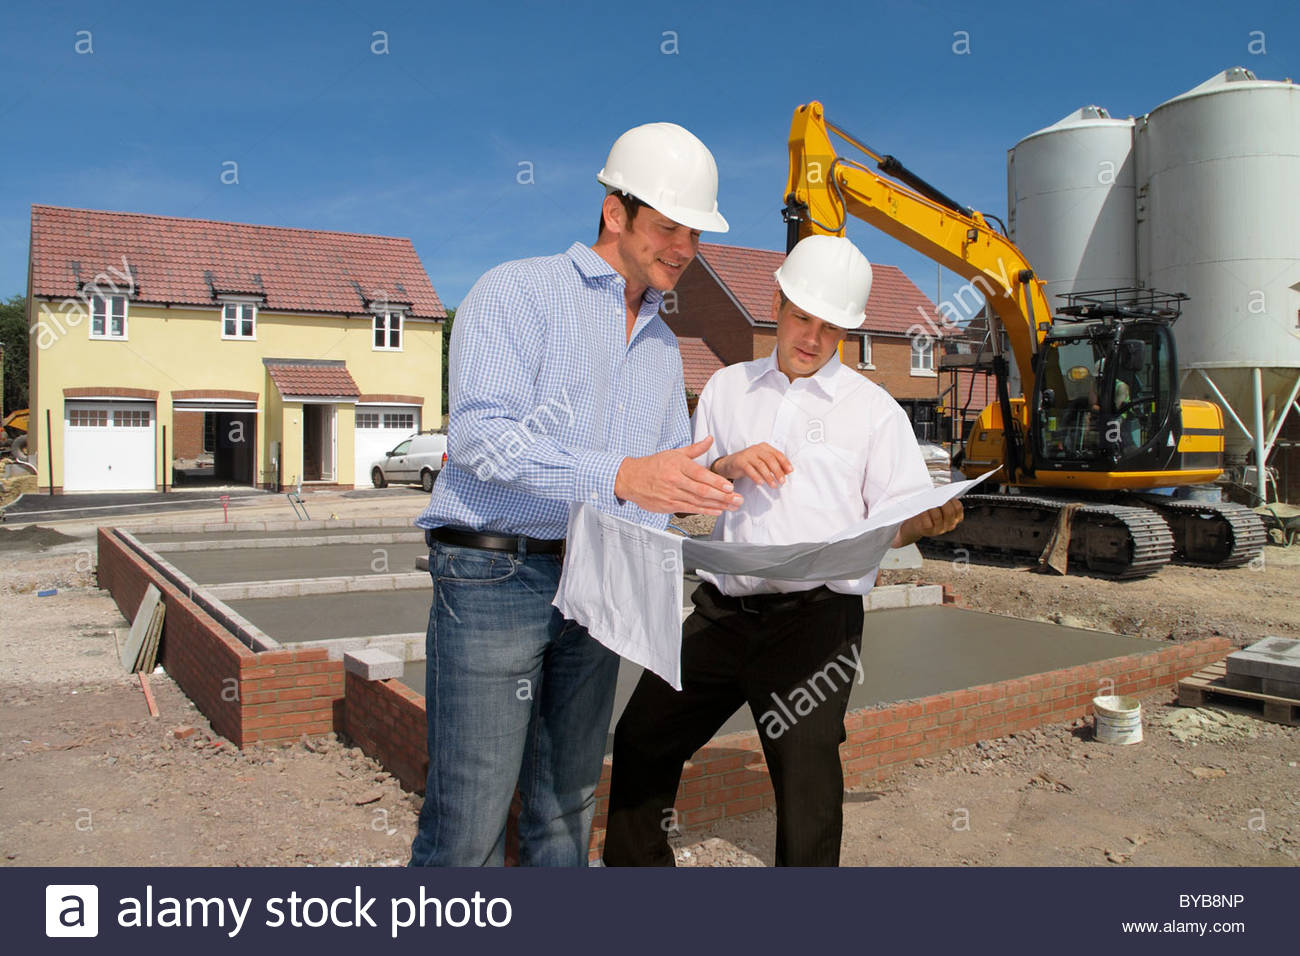 Construction workers holding blueprints talking on construction site Stock Photo